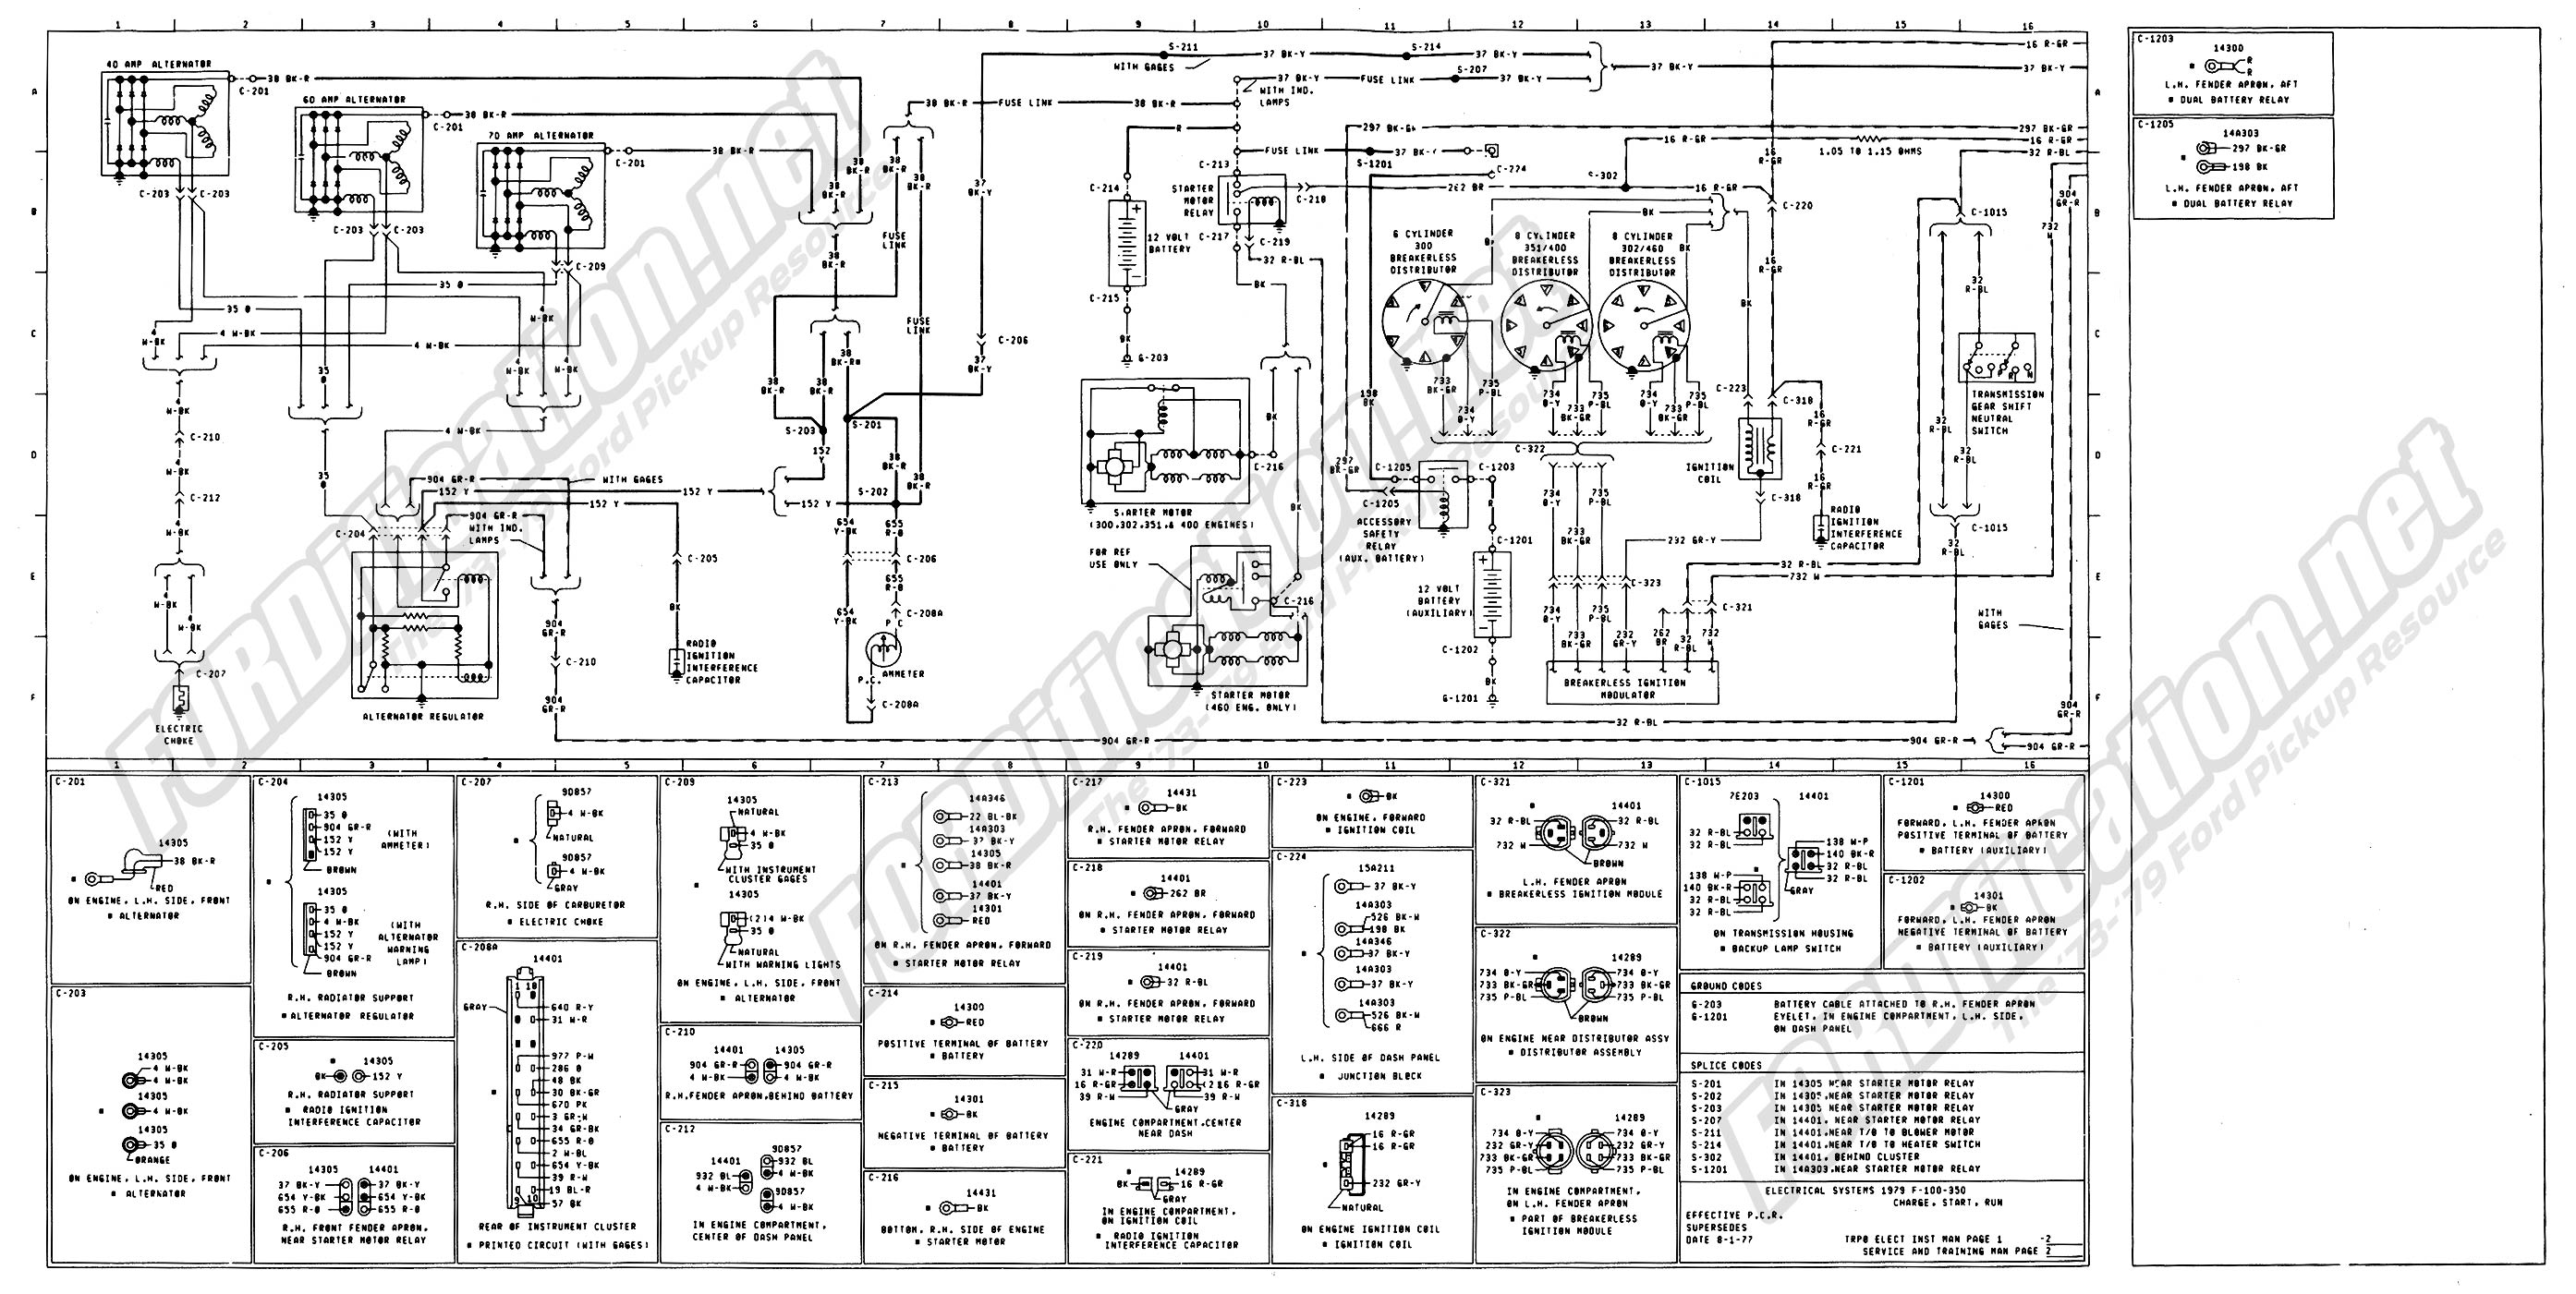 wiring_79master_2of9 1973 1979 ford truck wiring diagrams & schematics fordification net 1978 ford f150 radio wiring diagram at creativeand.co